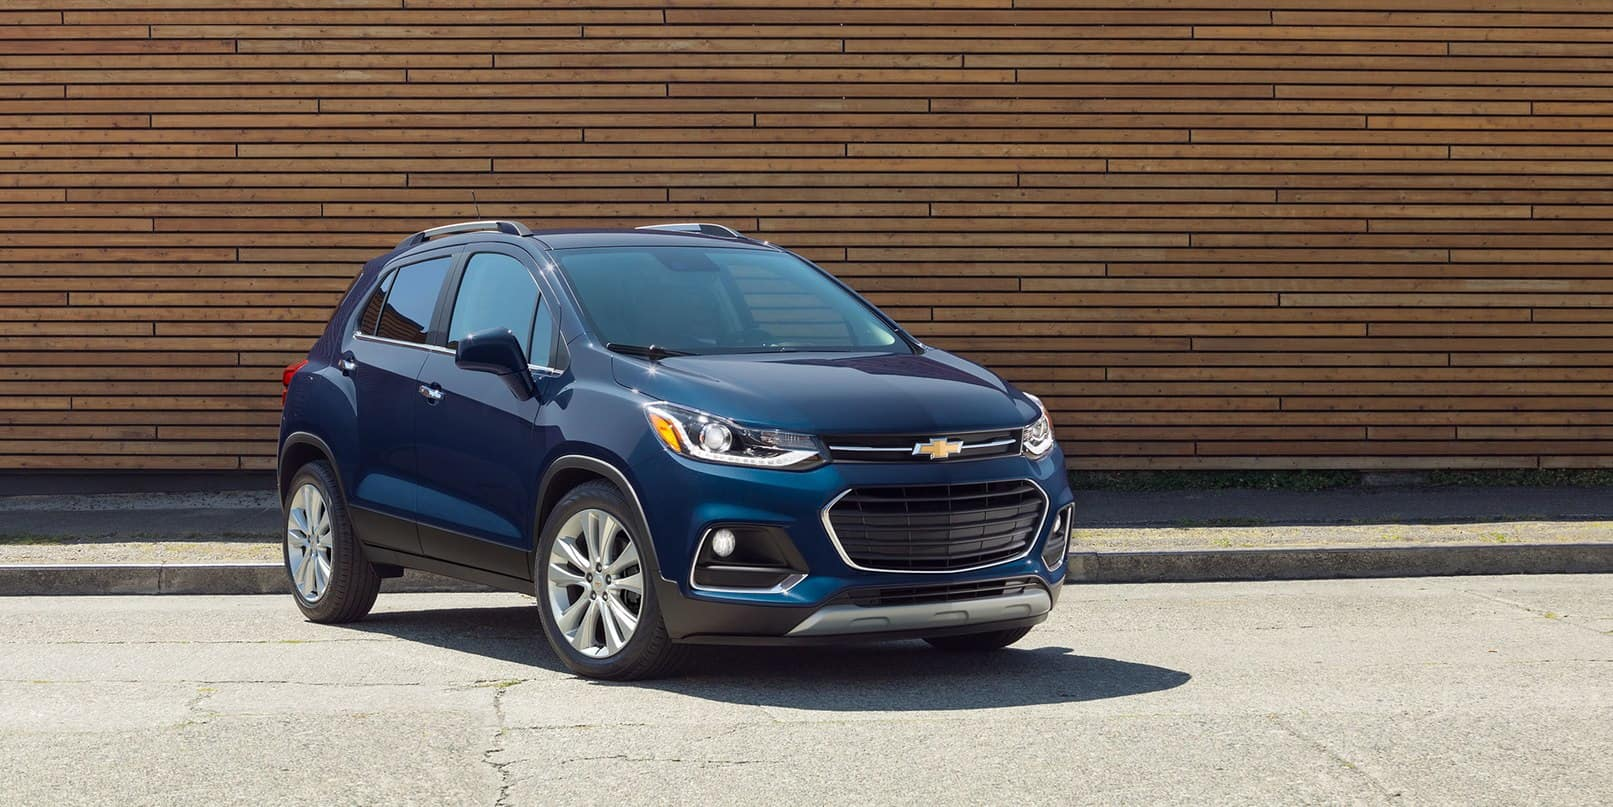 New 2018 Chevy Trax Exterior